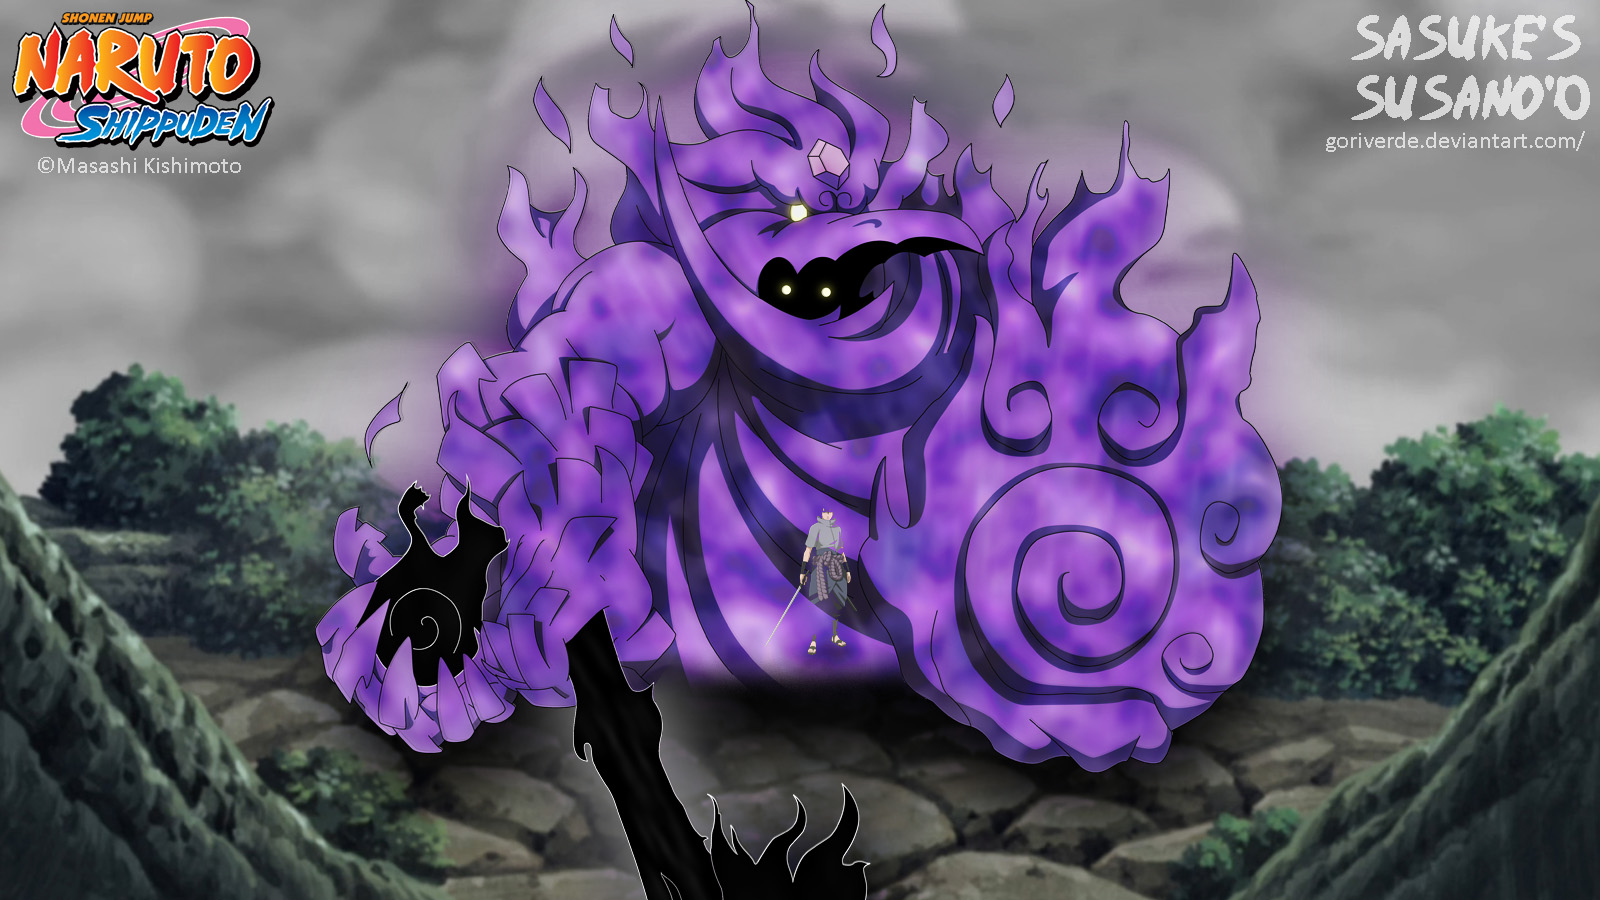 50+] Naruto Susanoo Wallpaper on WallpaperSafari